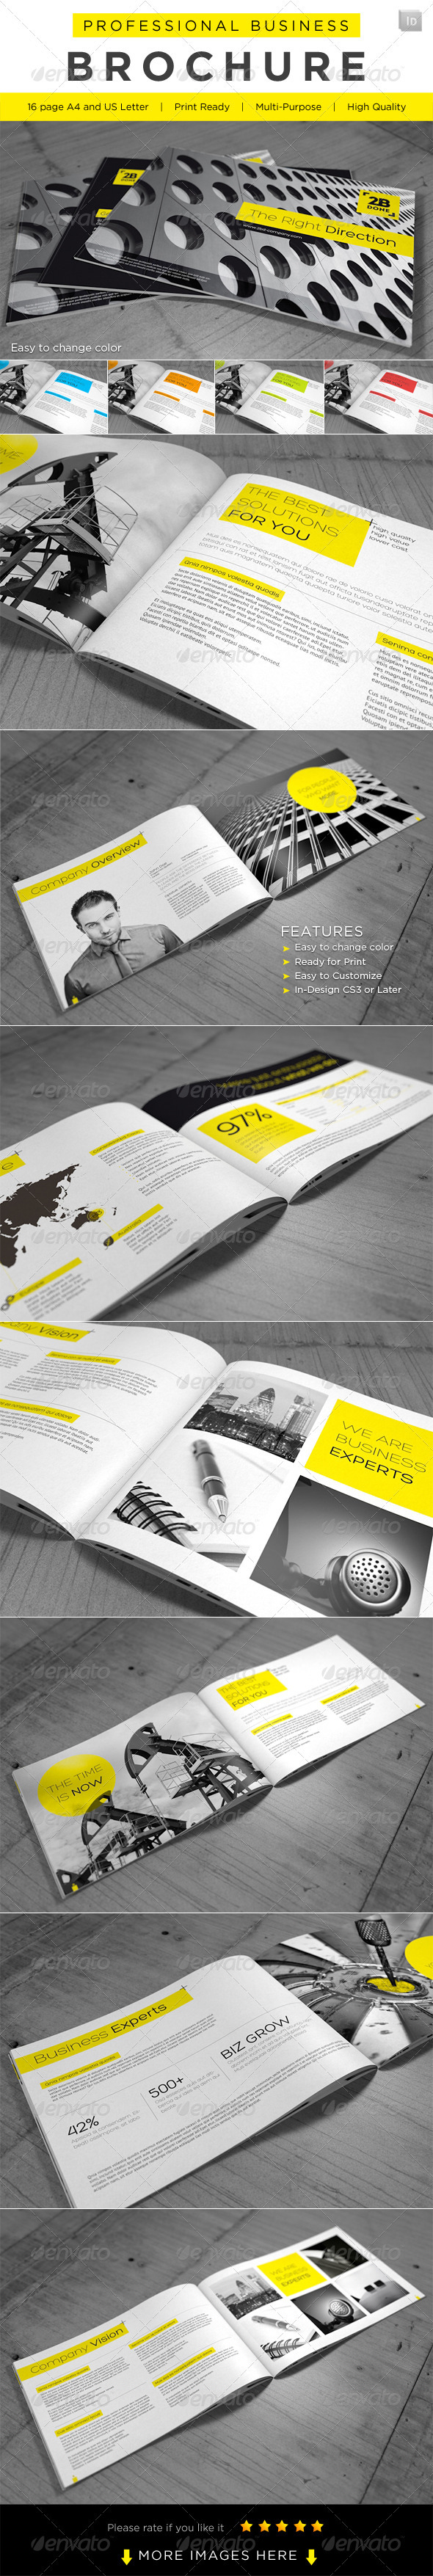 GraphicRiver Professional Business Brochure 2421295